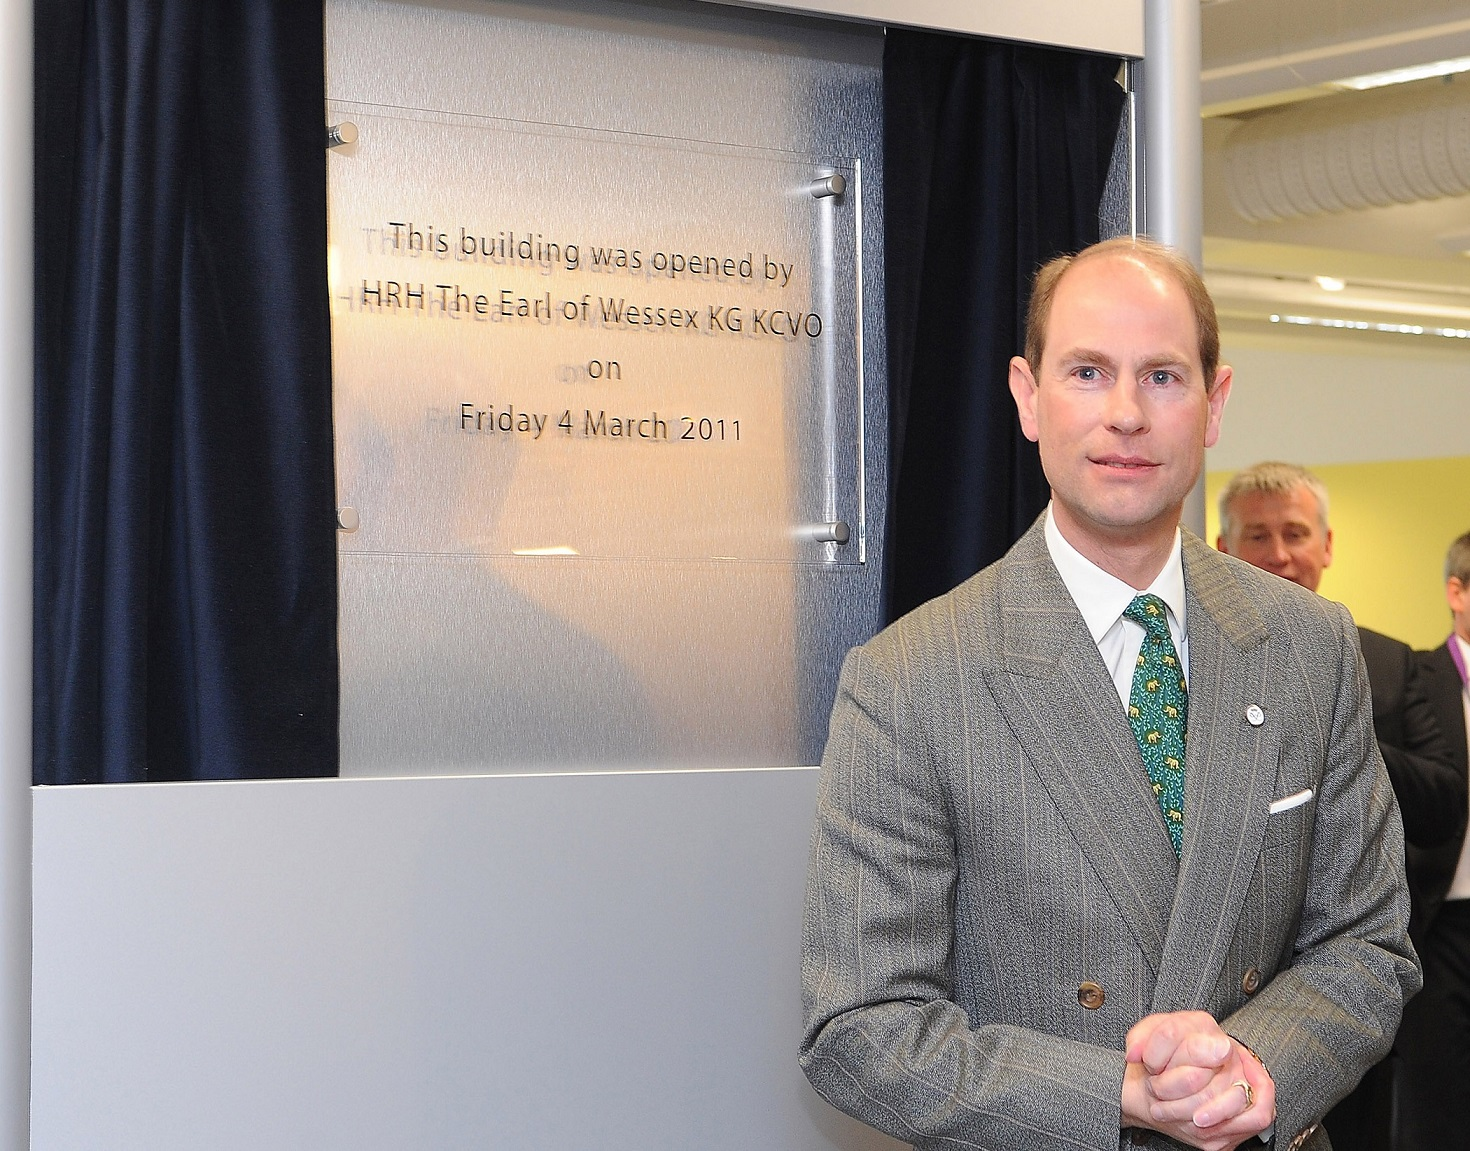 Earl of Wessex opens the Refurbished Library